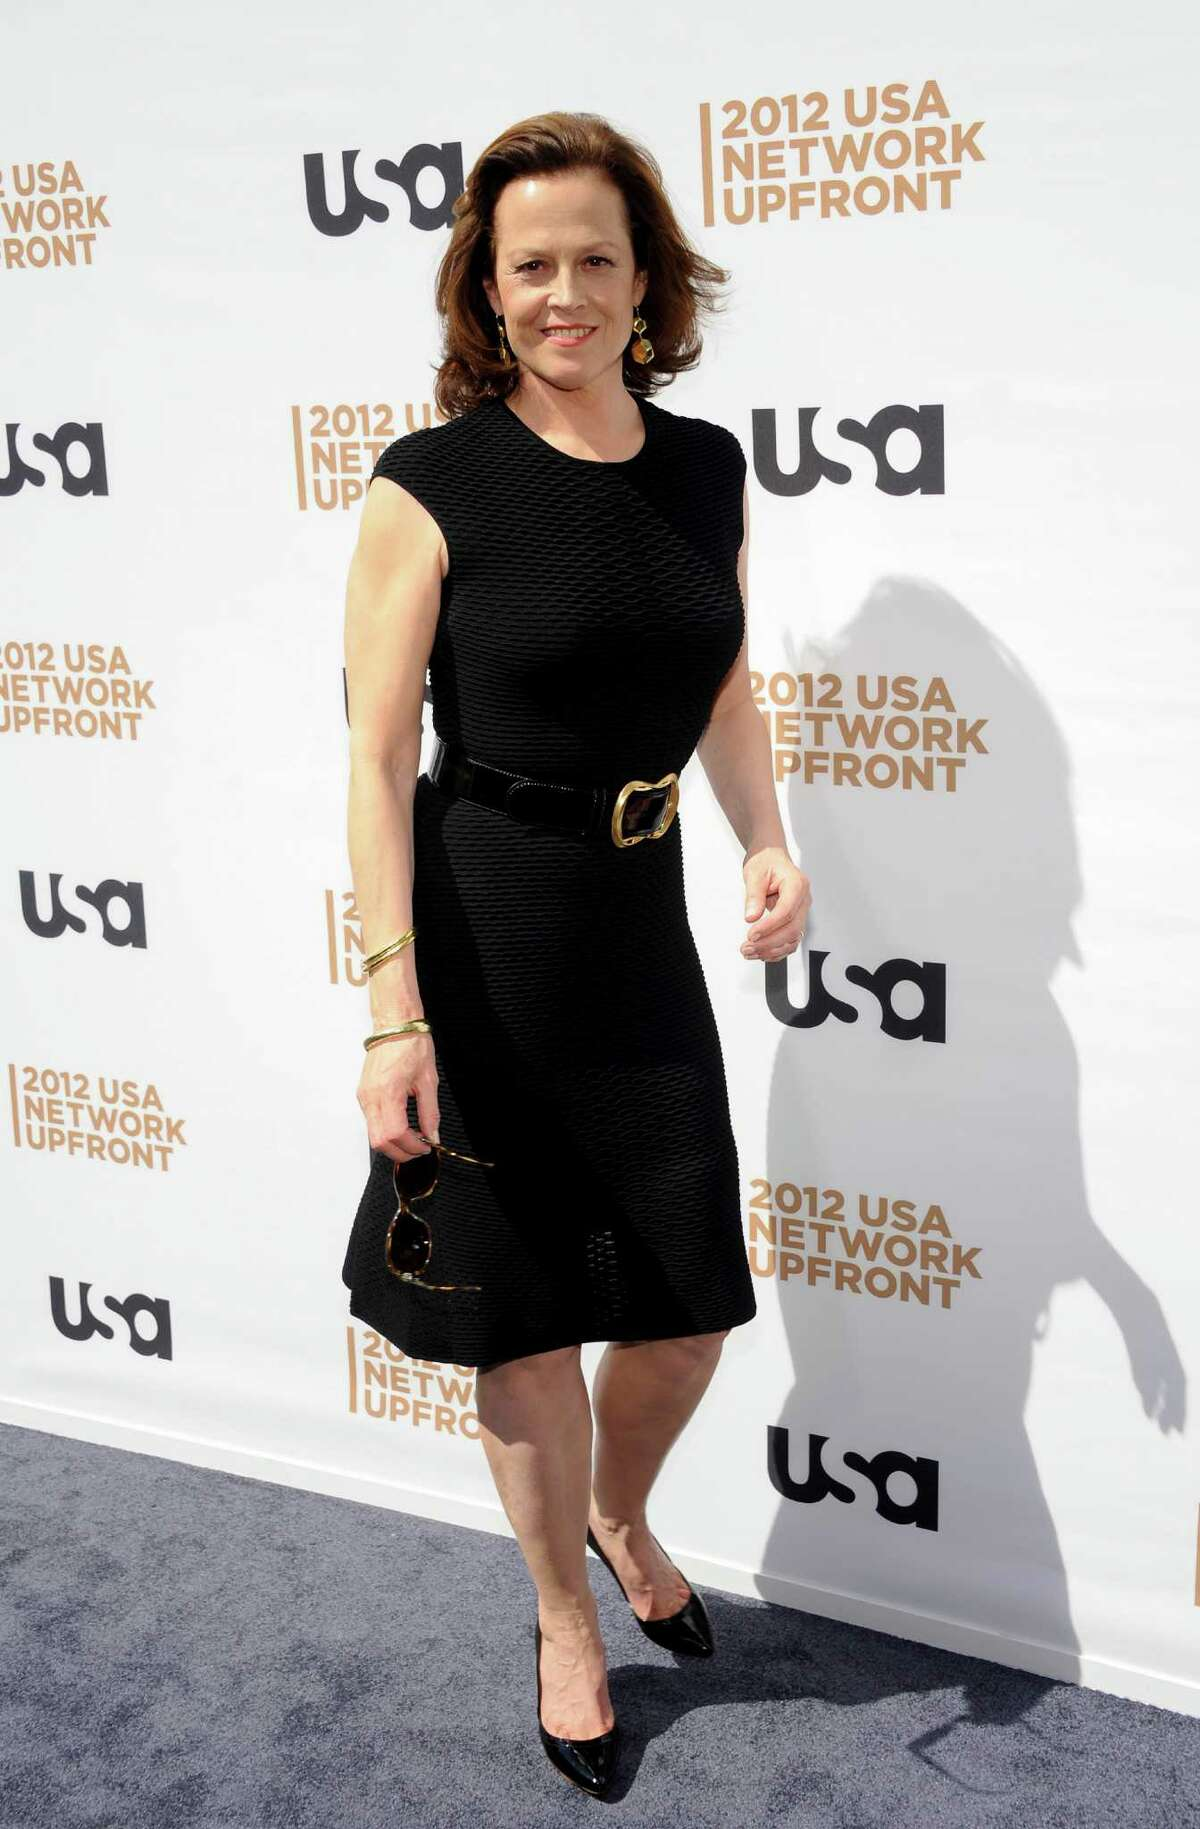 Actress Sigourney Weaver from the show